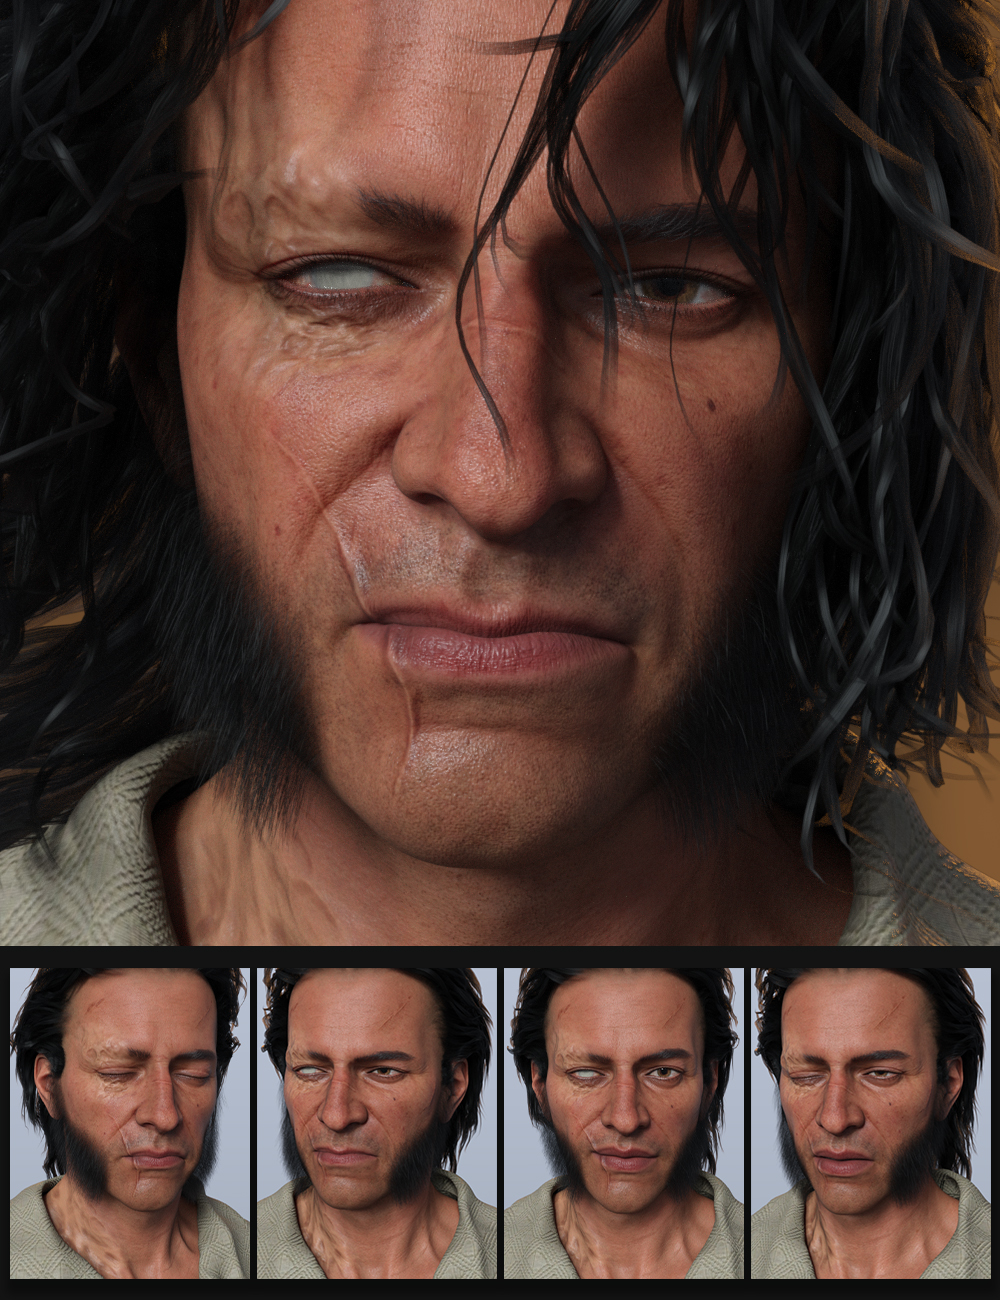 Scourge of the Seas Expression Morphs for Wolfgang 8.1 by: Quixotry, 3D Models by Daz 3D